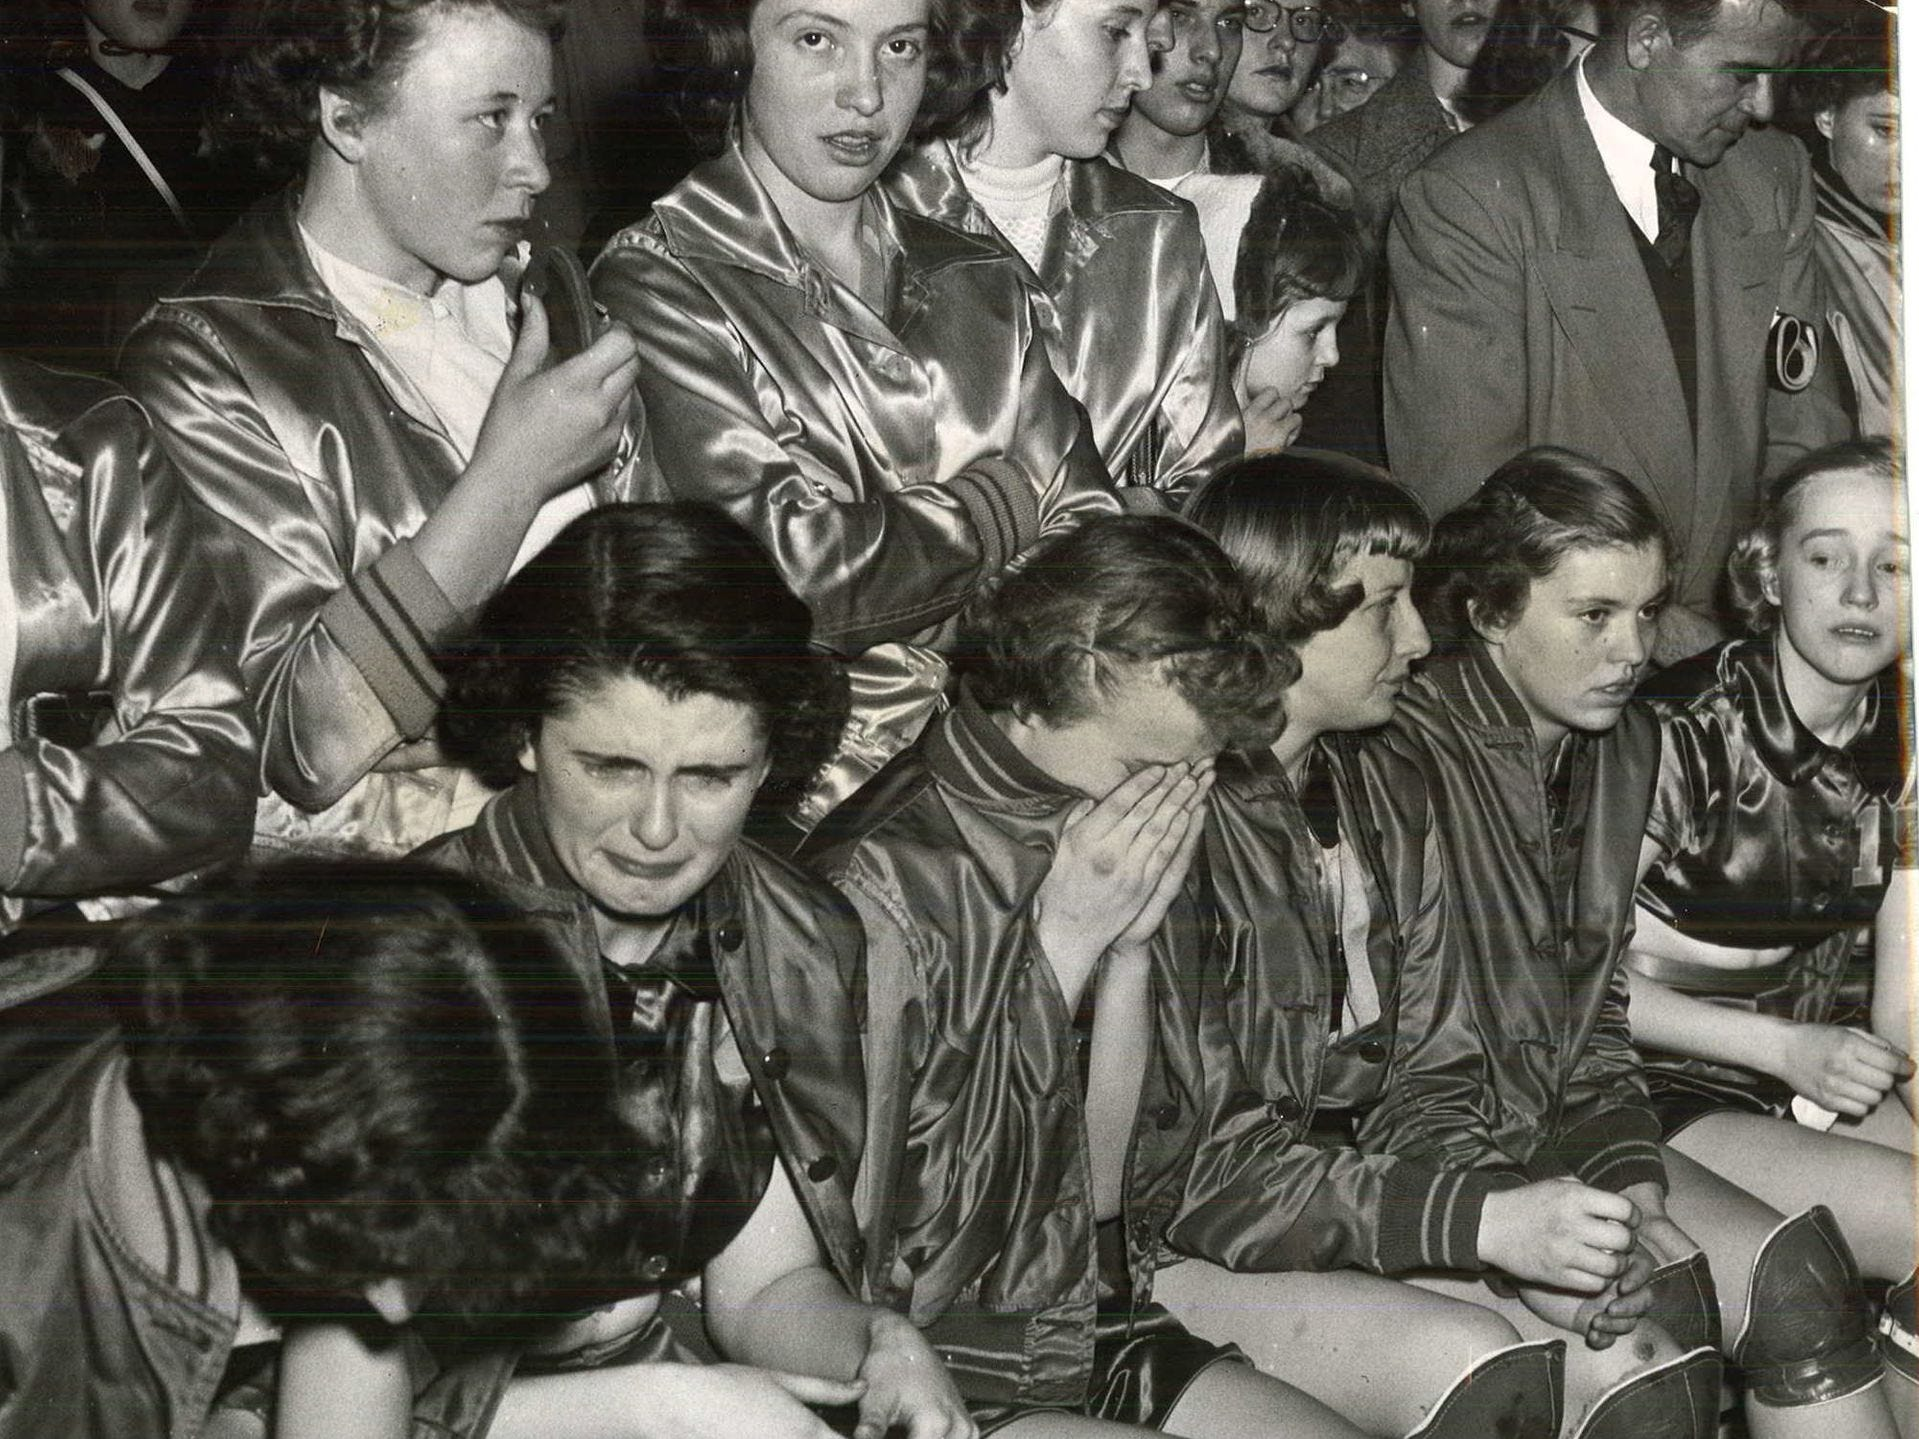 1952: The Monona girlsÕ basketball team mourns their loss to Reinbeck in the state girlsÕ basketball tournament. From left are: Norma Schoulte, Carole Gilbert, Joanita Blumhagen, Marjorie Fett, Sharon Le Moon, Nancy Riedesel and Dorothy Hubacher. Register file photo